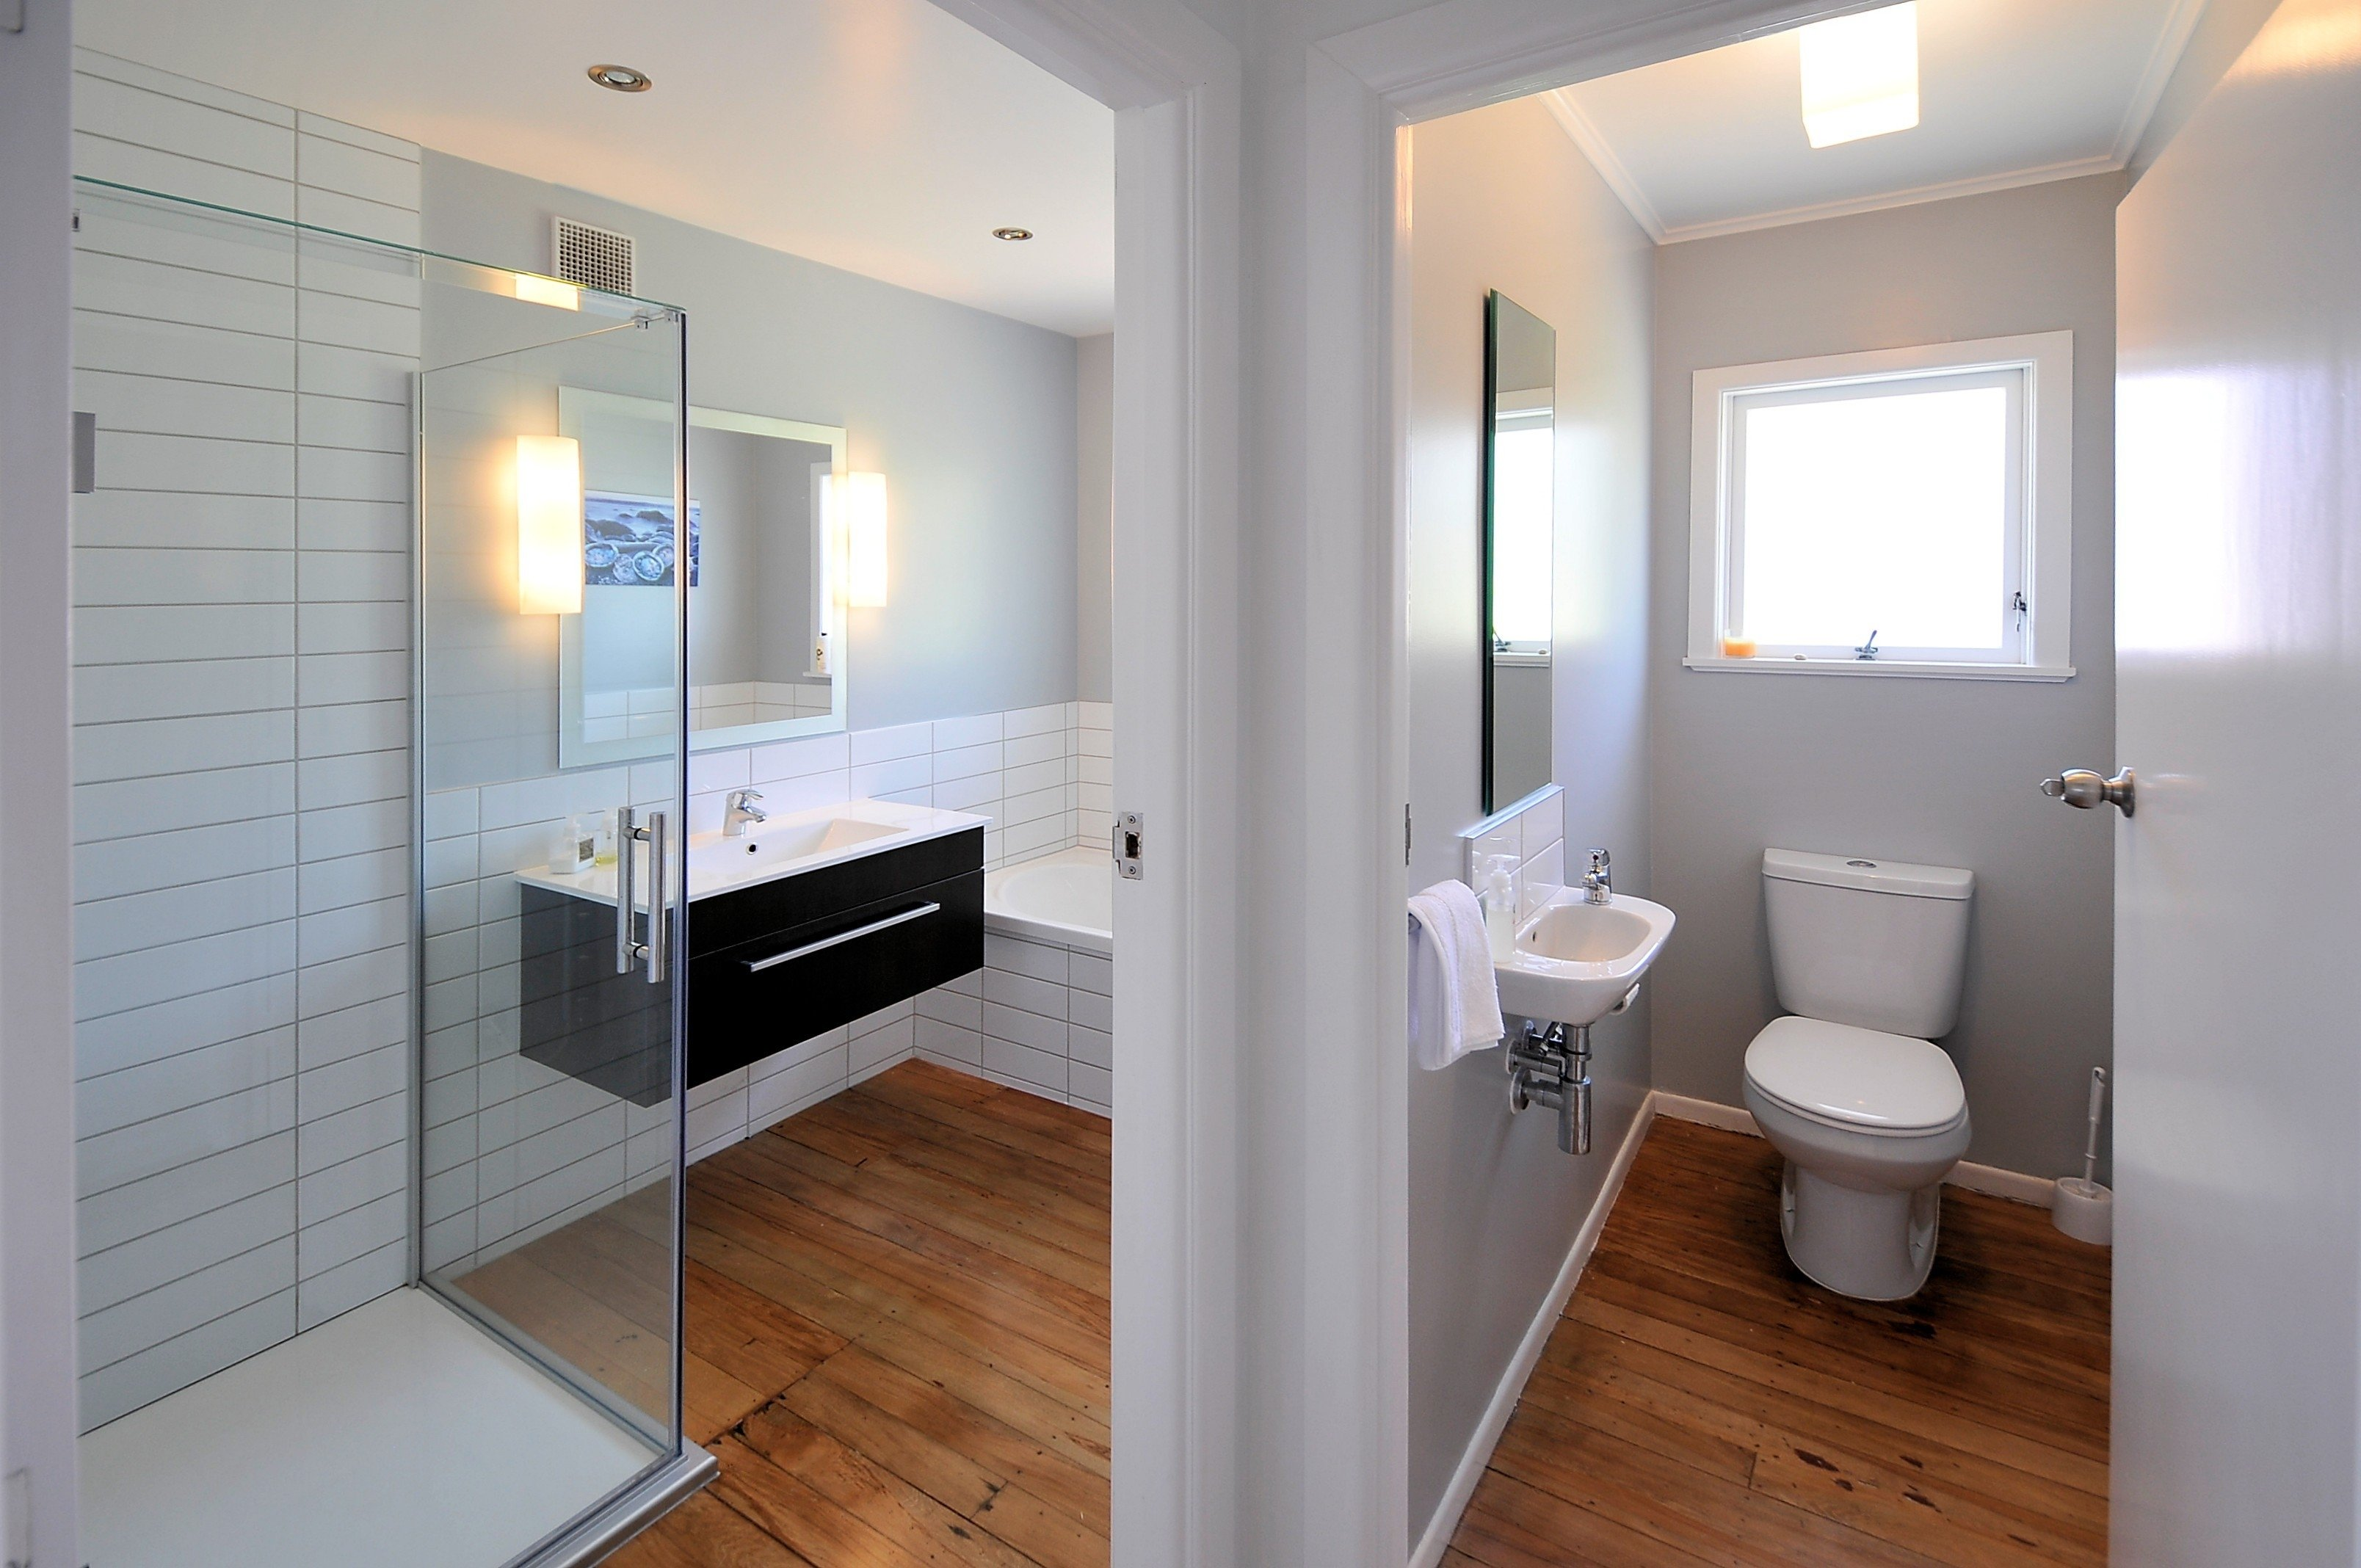 10 Perfect Low Cost Bathroom Remodel Ideas low cost bathroom renovation nz bathroom designs